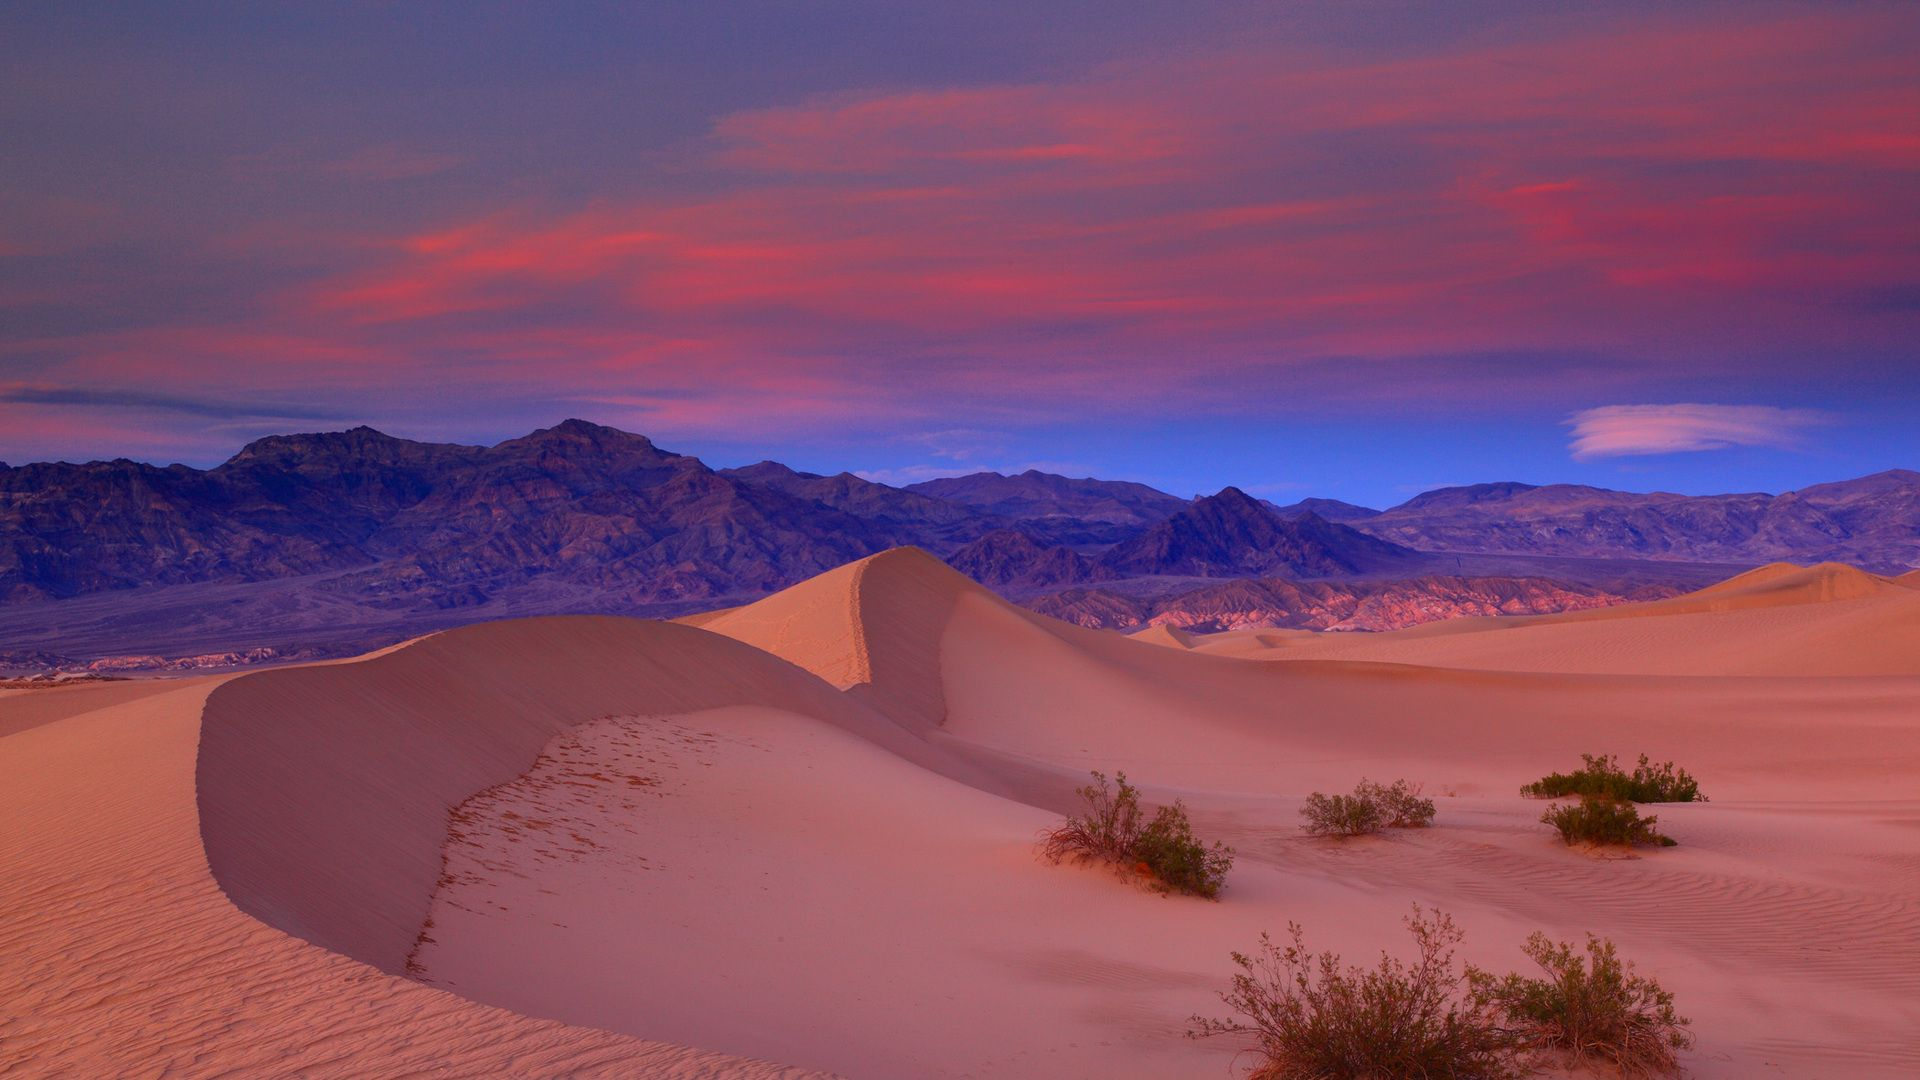 Desert Landscape Wallpapers - Top Free Desert Landscape Backgrounds